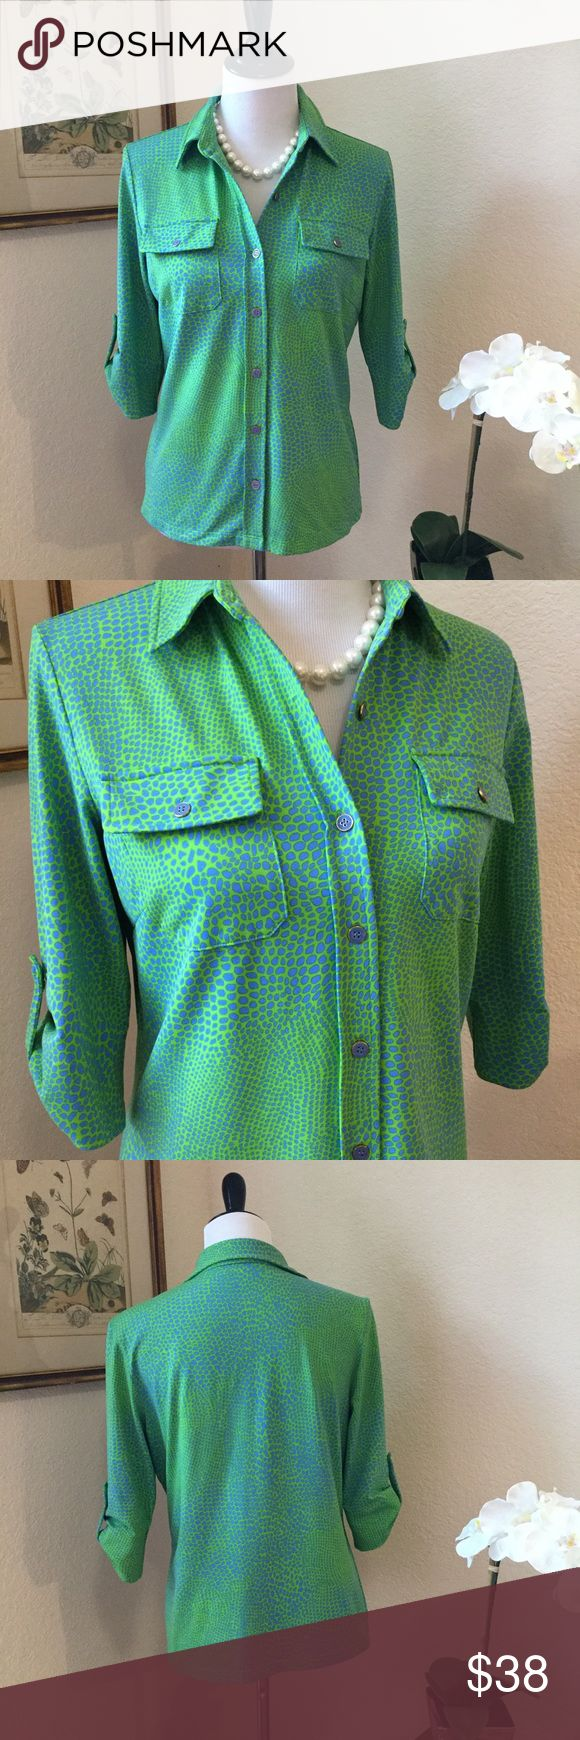 J McLAUGHLIN Blue & Green Animal Print Top Beautiful nylon and spandex blend button front shirt in cool colors of lime green and ocean blue. This fabulous blouse has two front pockets, 3/4 length sleeves and cute blue buttons. In A+ excellent condition. Wear with white pants or shorts this summer! J. McLaughlin Tops Blouses